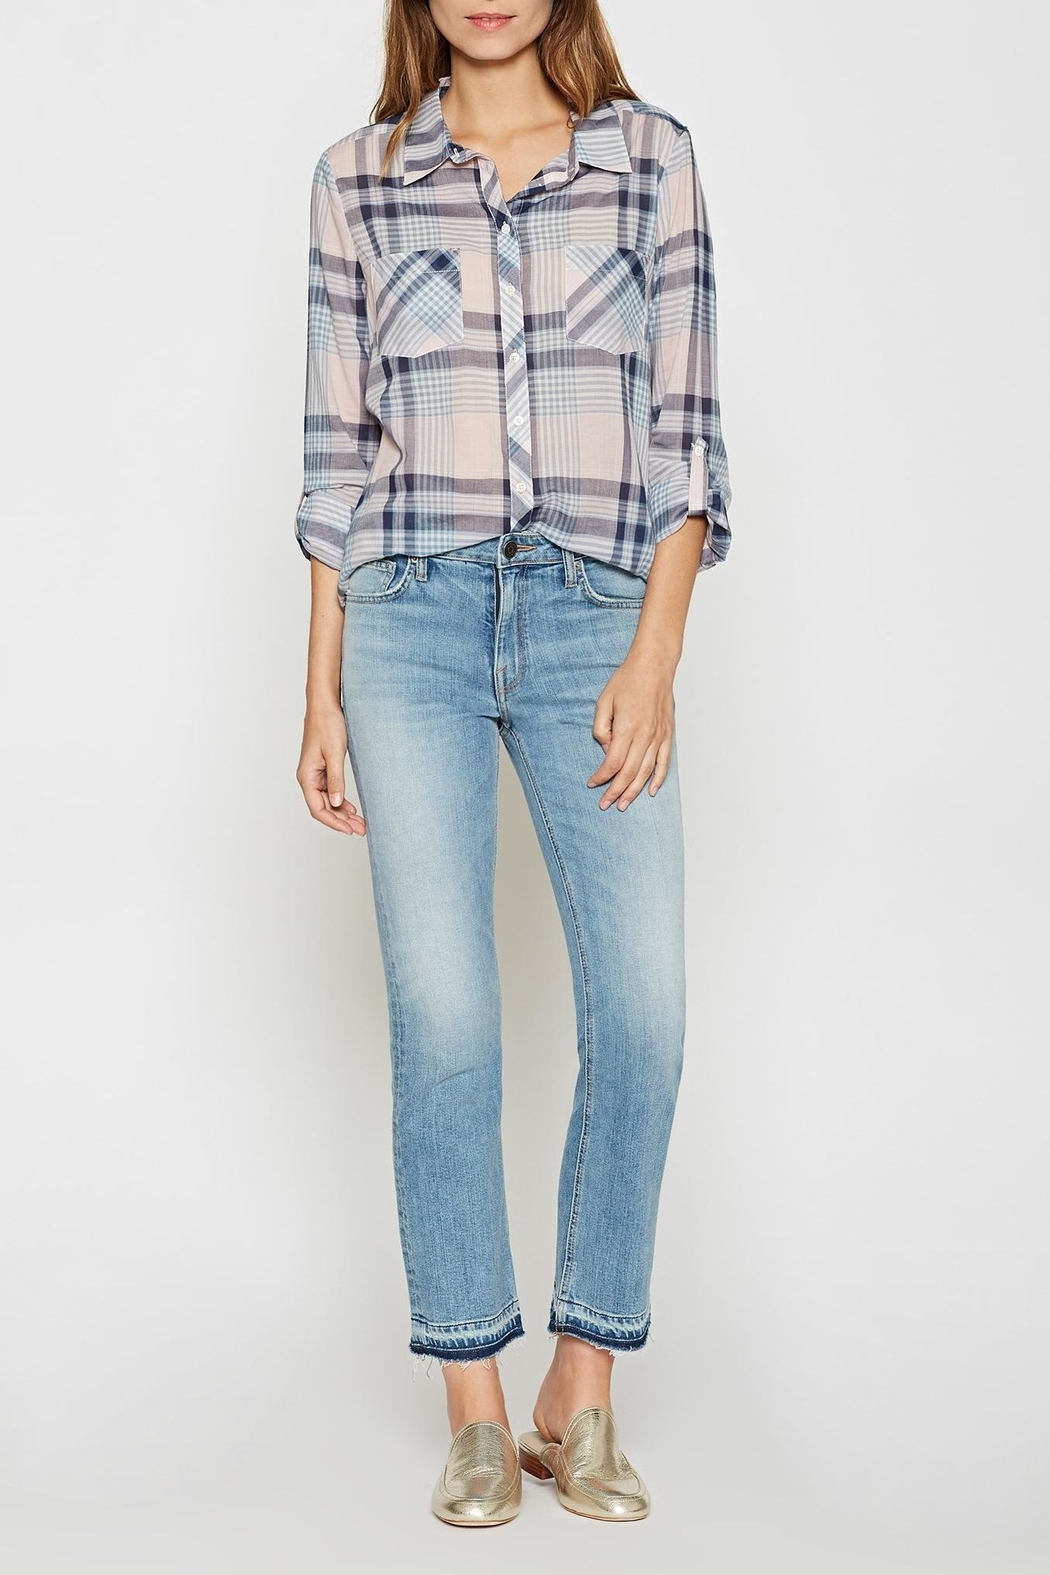 Joie Soft Lilya Plaid Top - Front Full Image